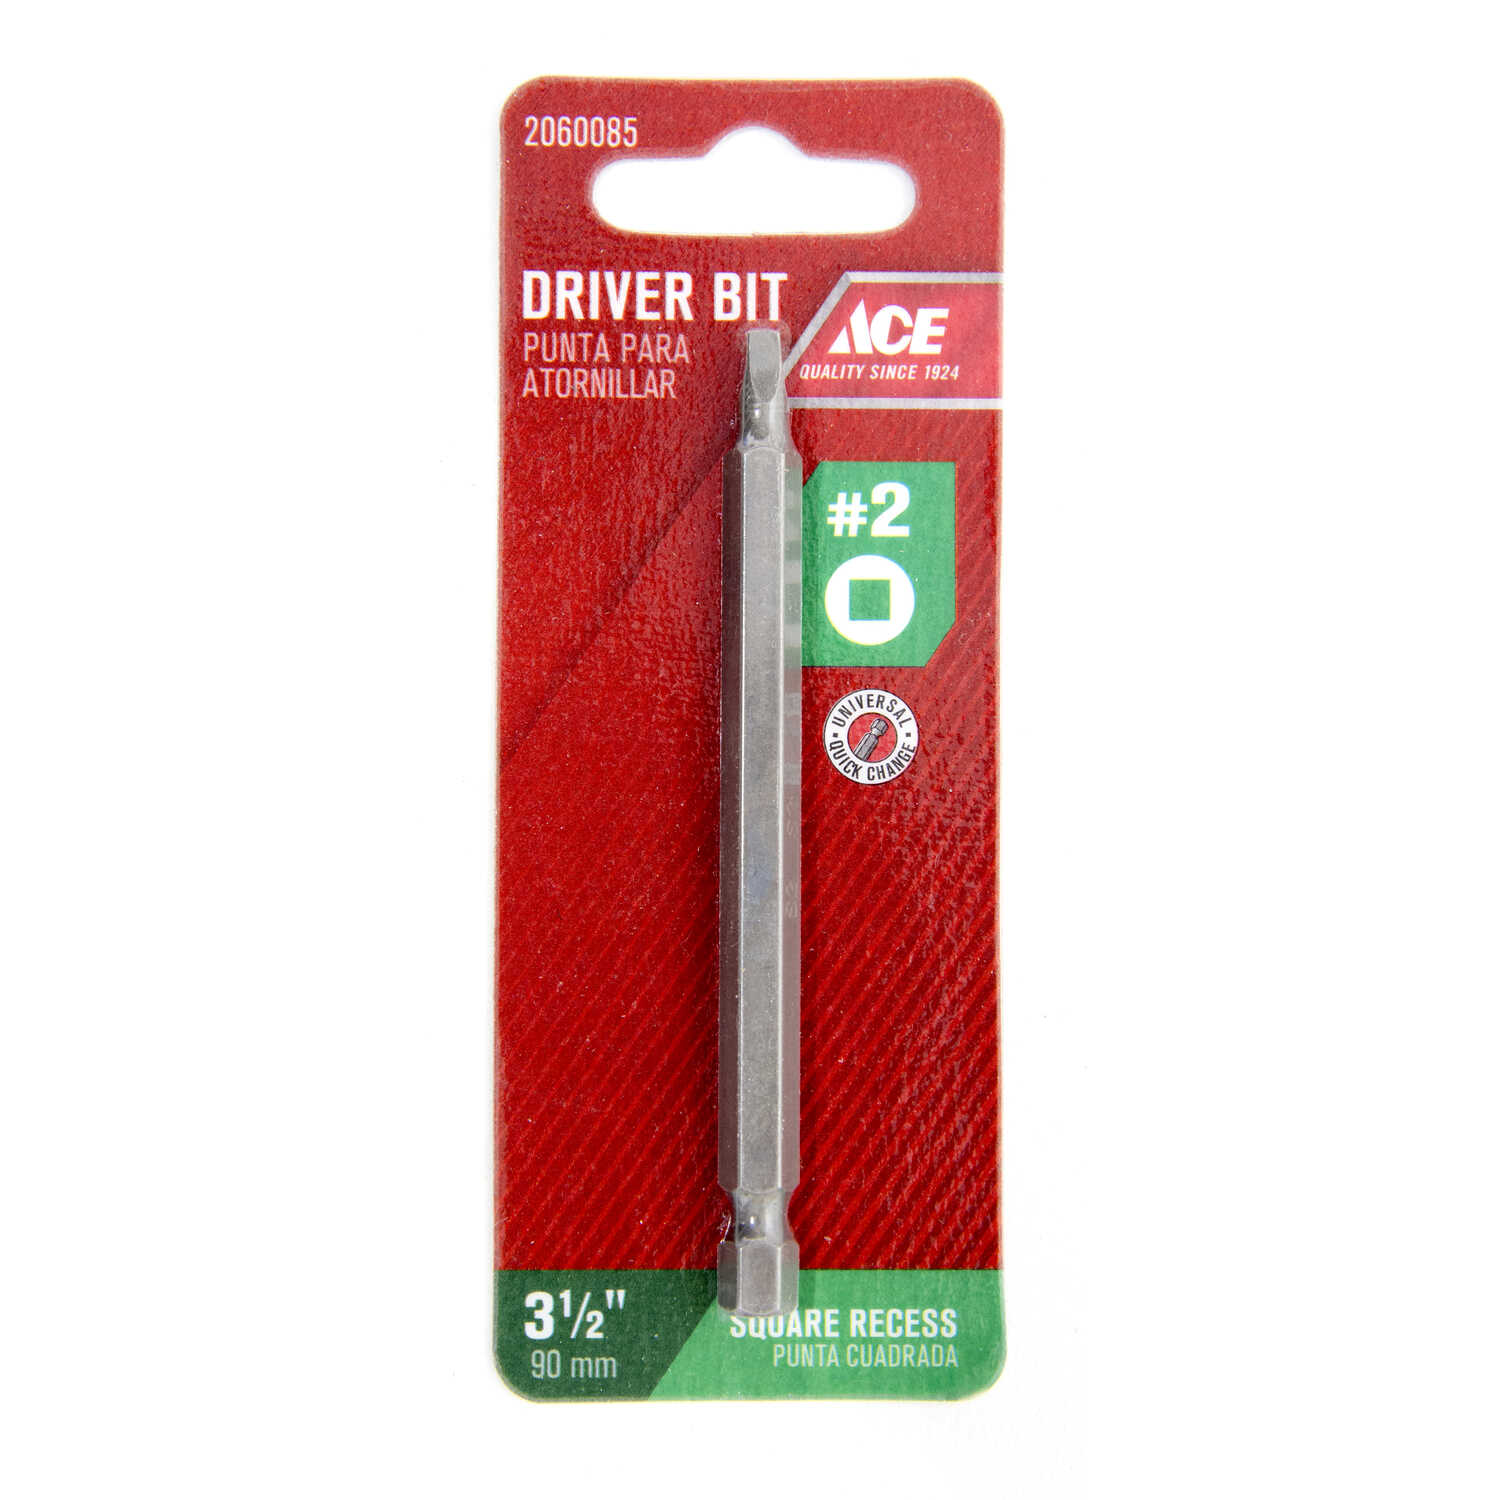 Ace  Square Recess  #2   x 3-1/2 in. L Screwdriver Bit  S2 Tool Steel  1/4 in. Quick-Change Hex Shan